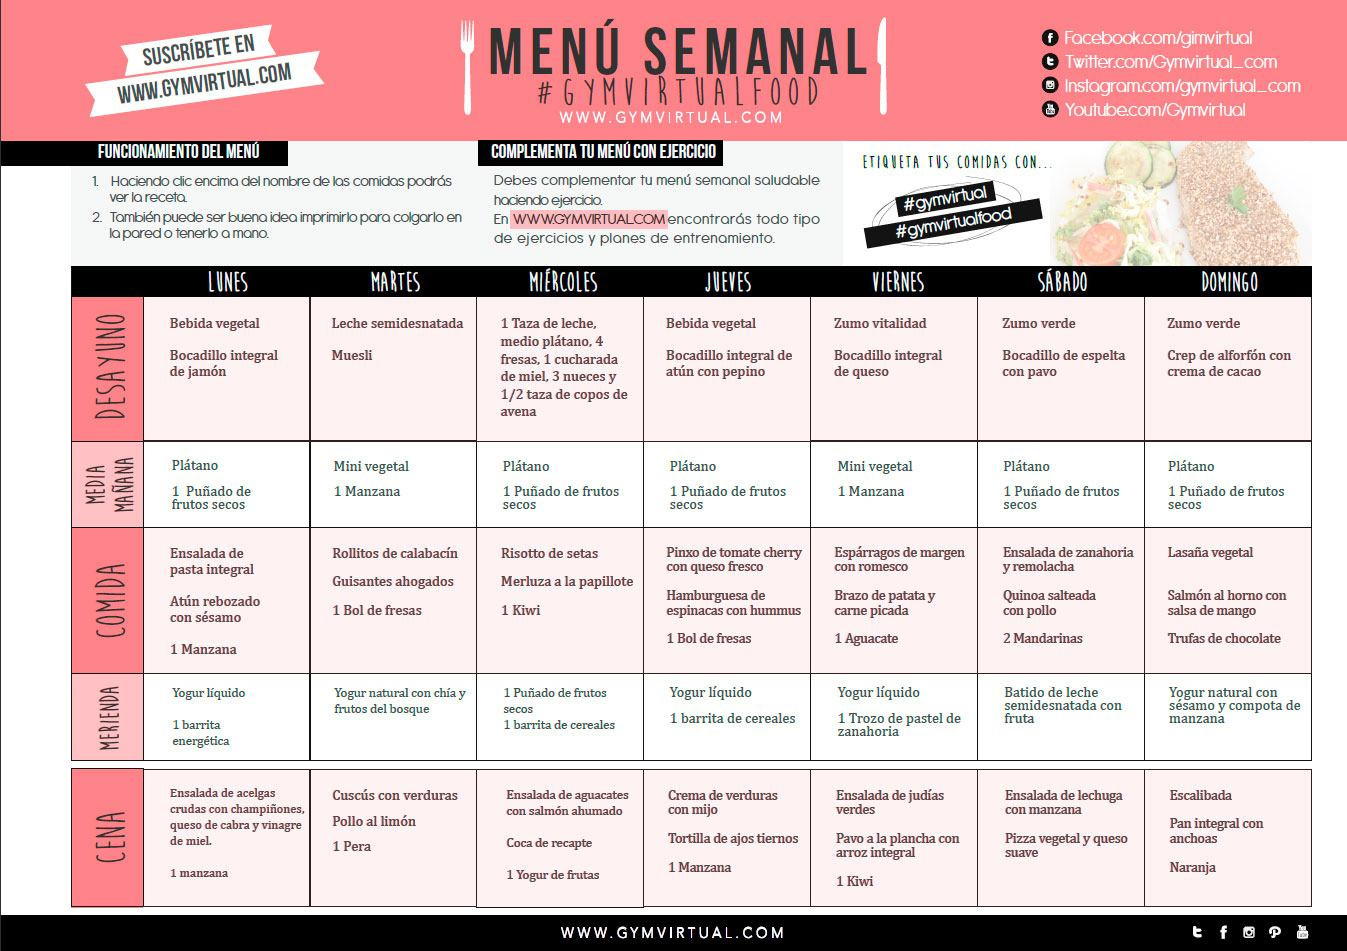 men semanal de recetas saludables gym virtual